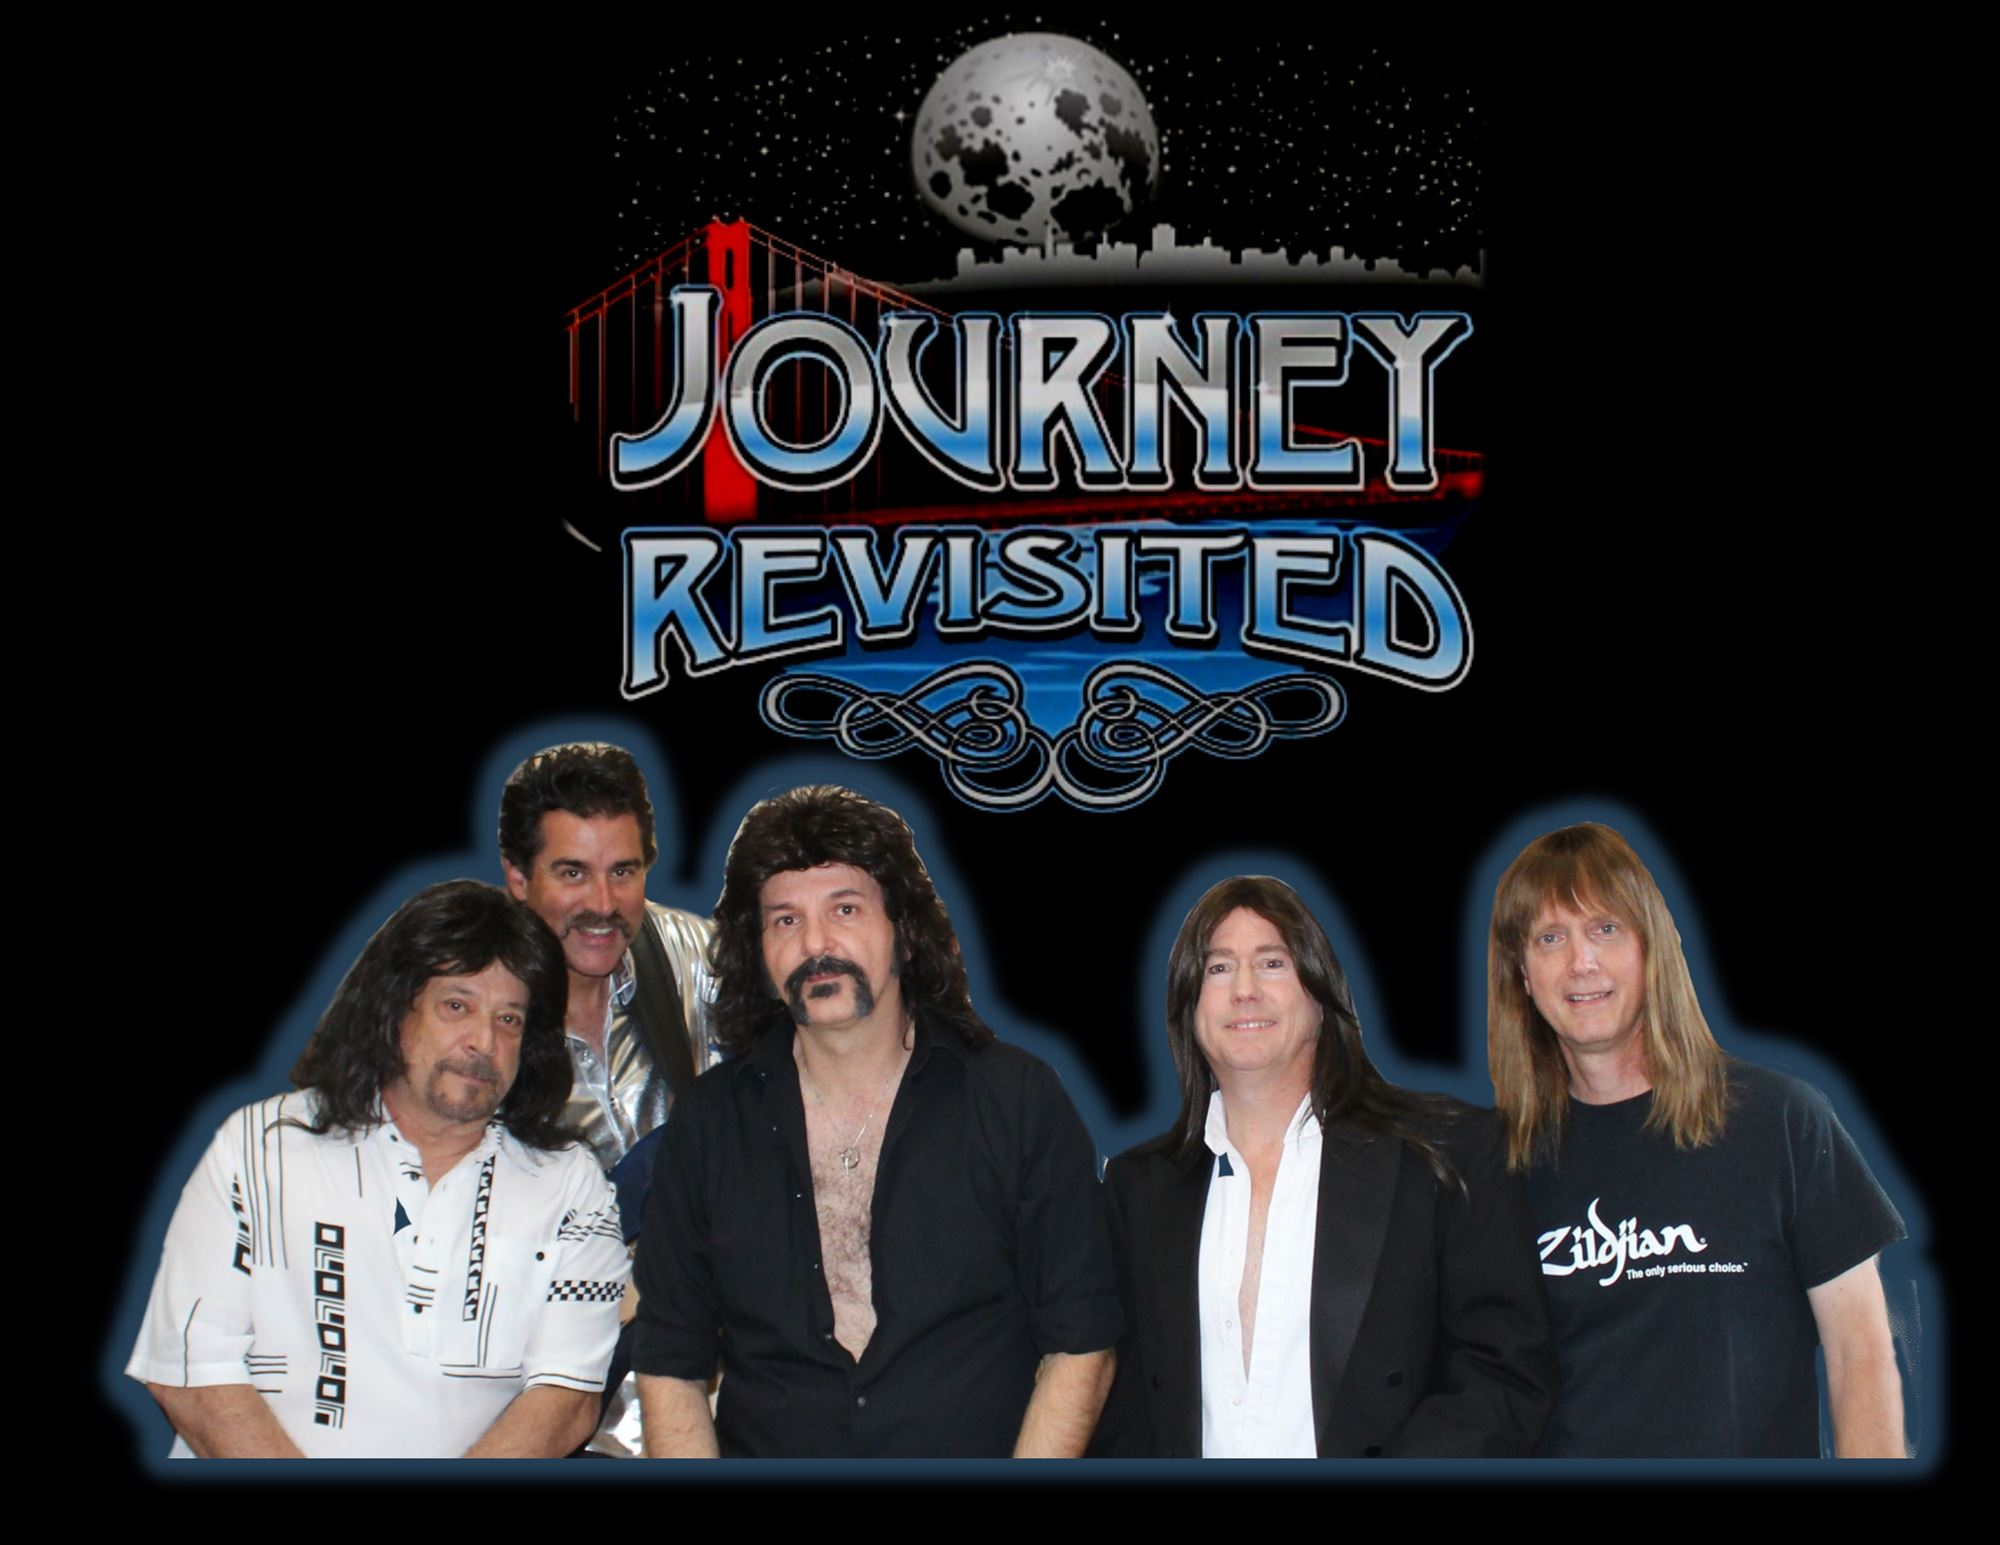 Journey Re-visited